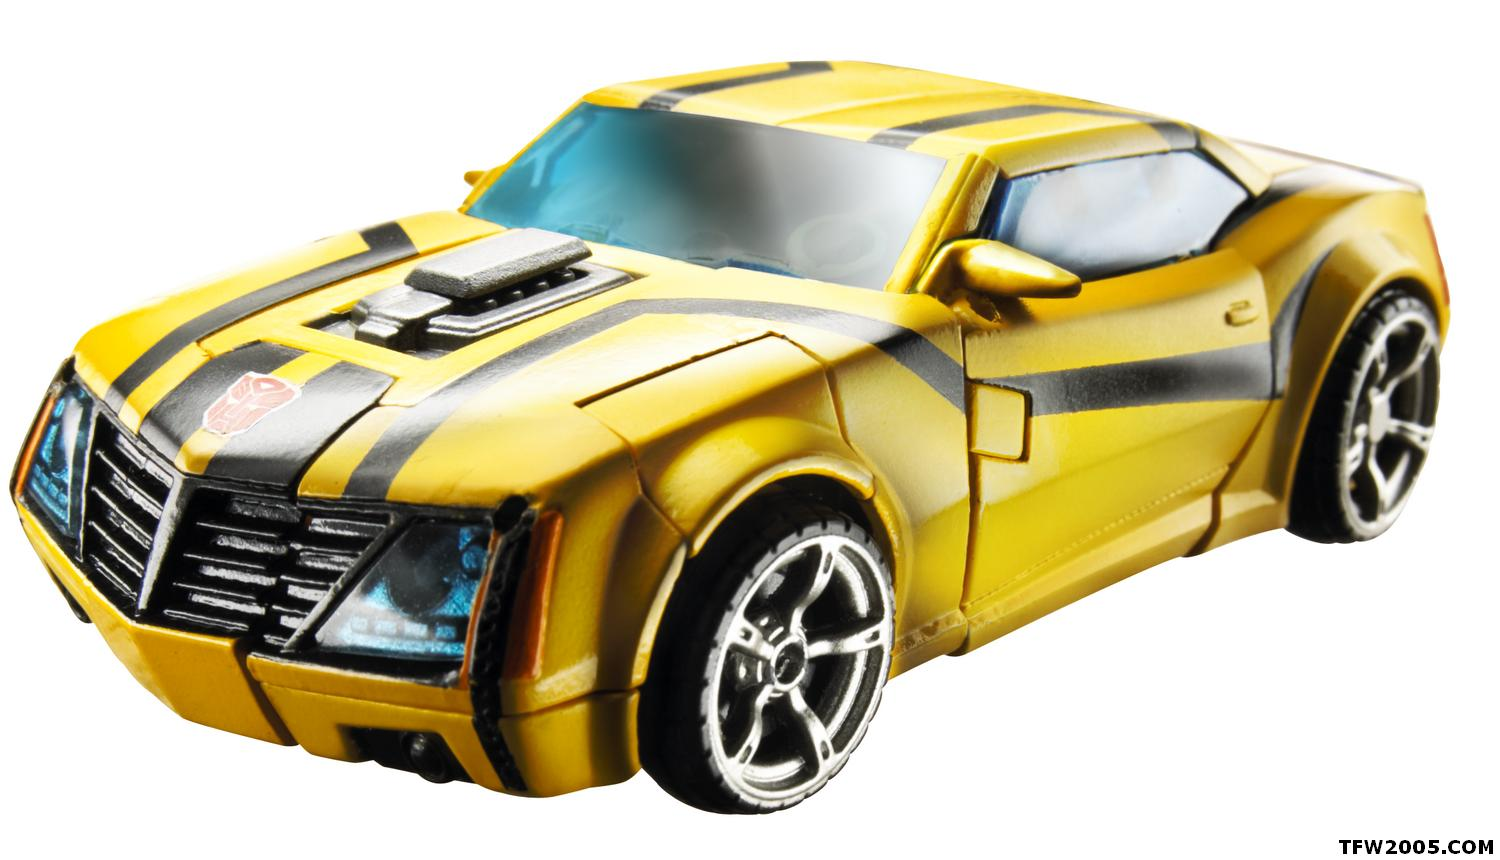 bumblebee transformers toys tfw2005. Black Bedroom Furniture Sets. Home Design Ideas